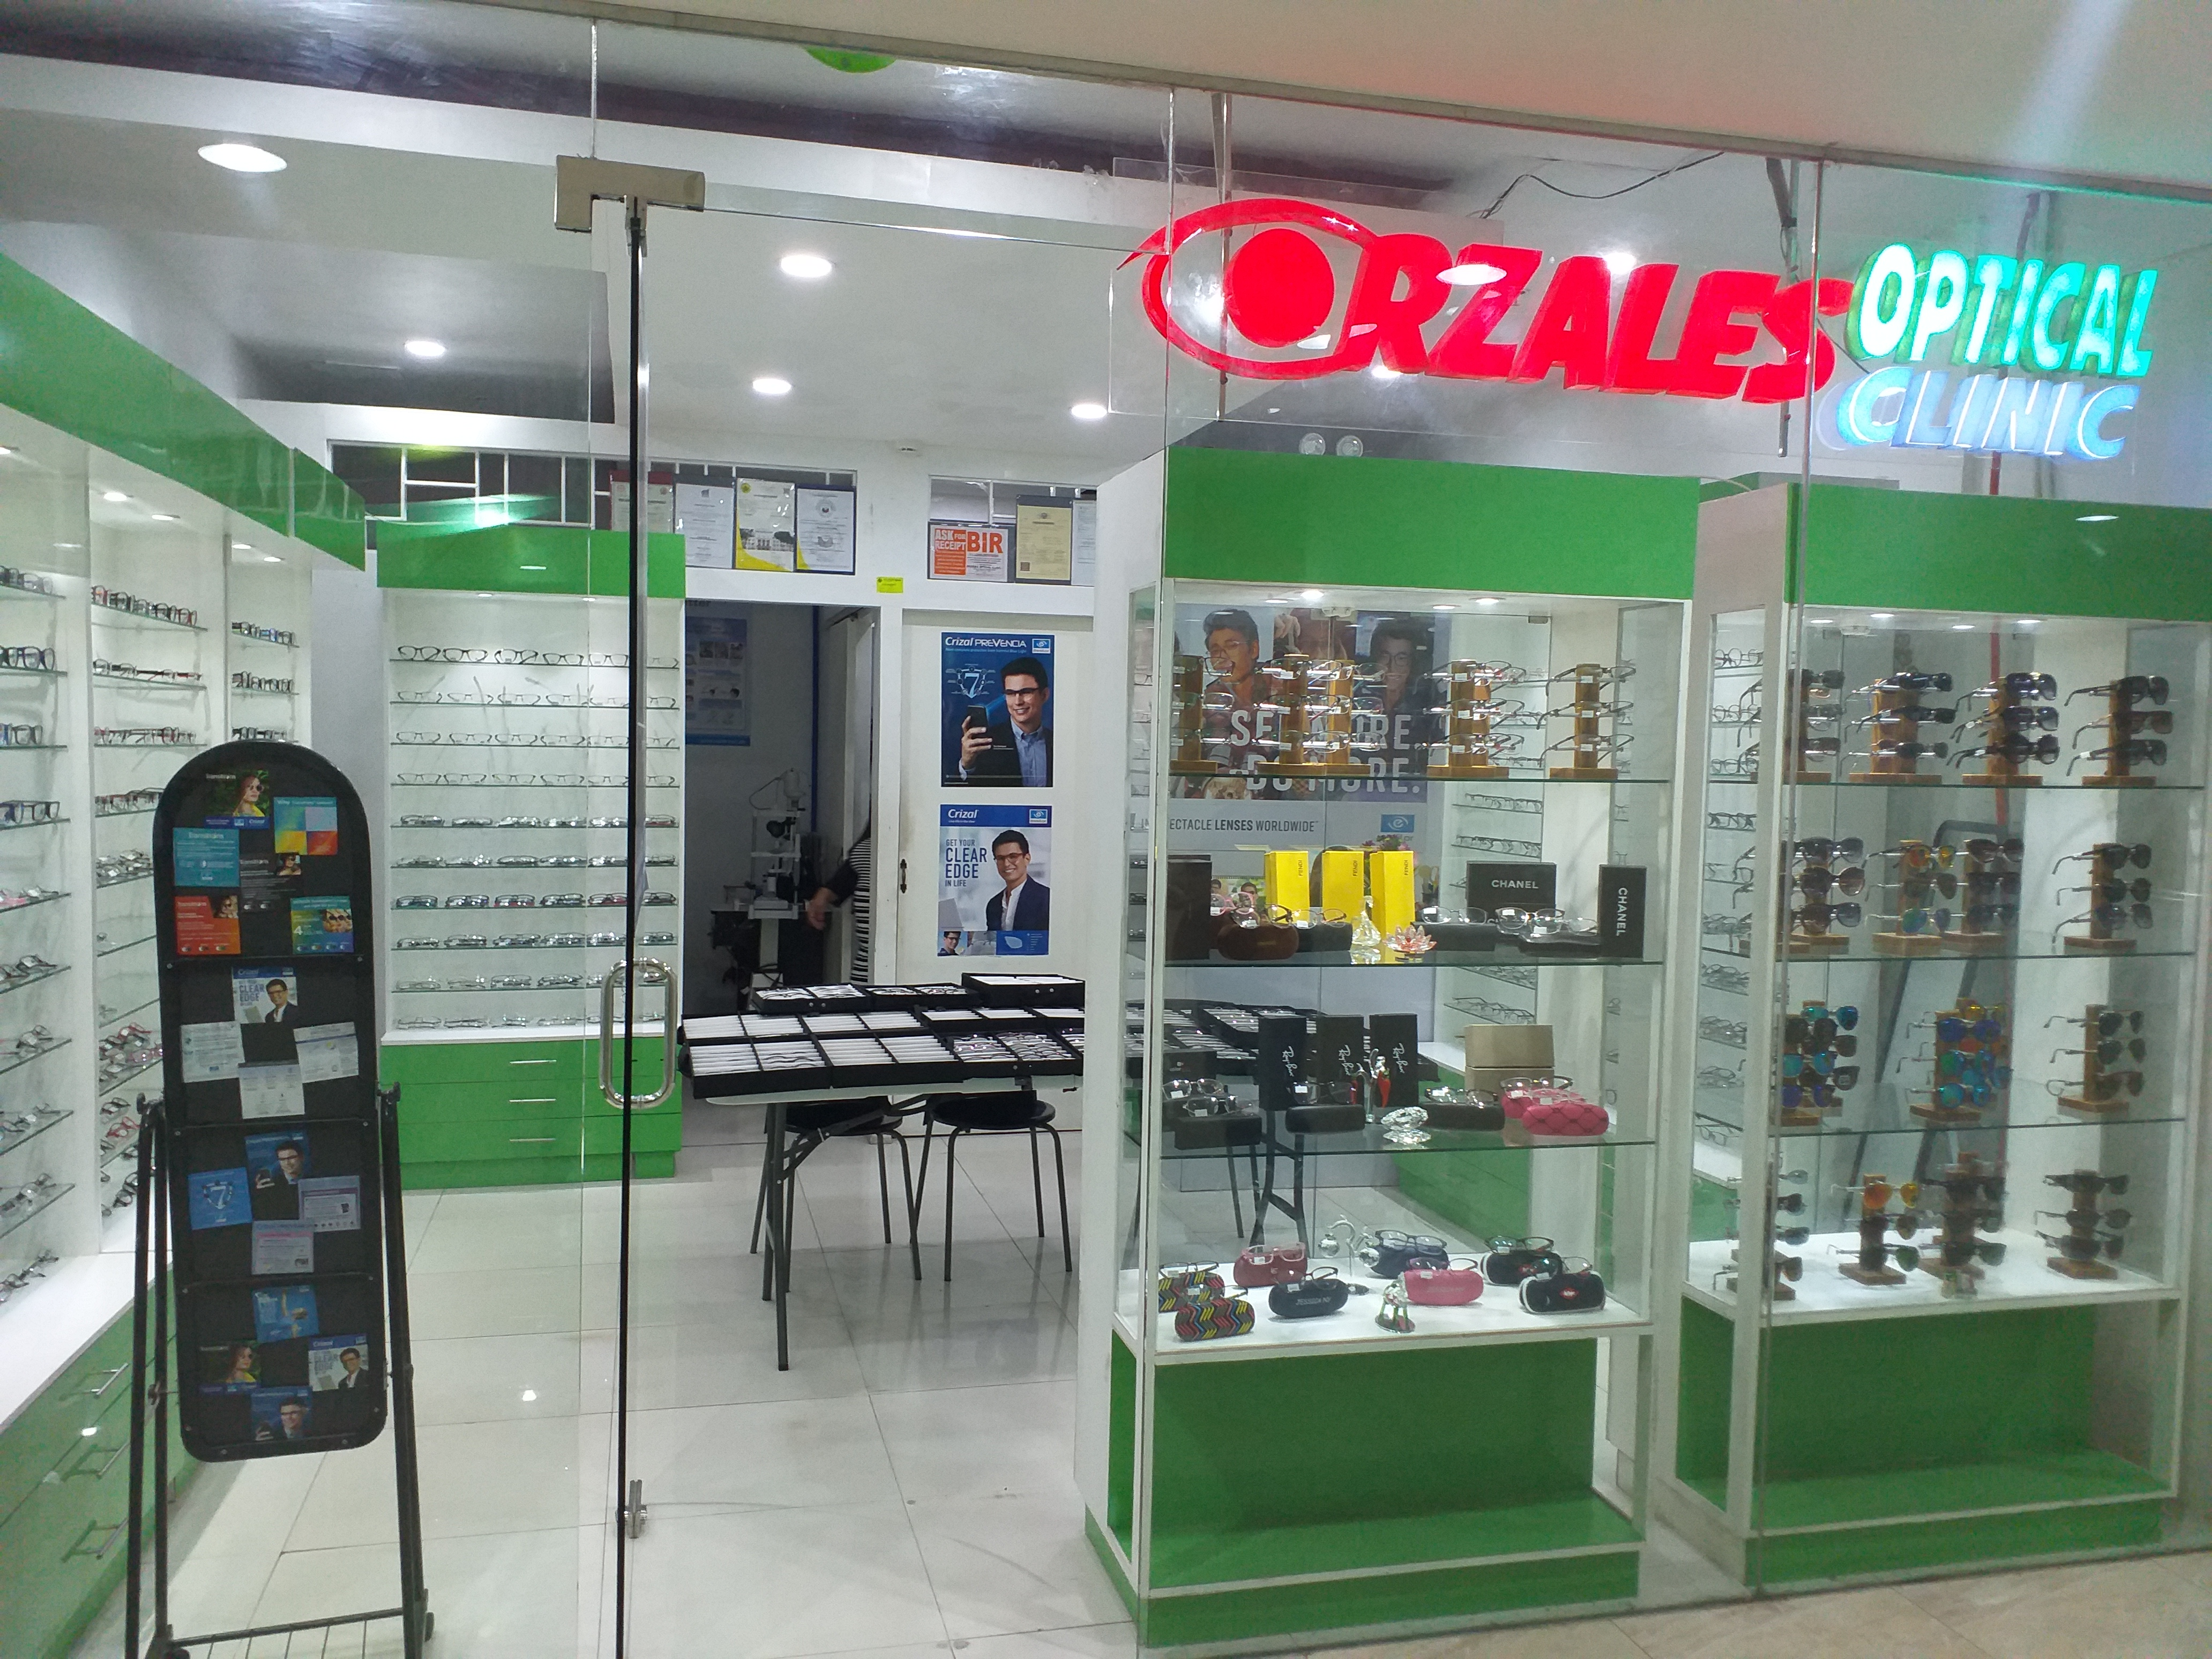 ORZALES OPTICAL CLINIC